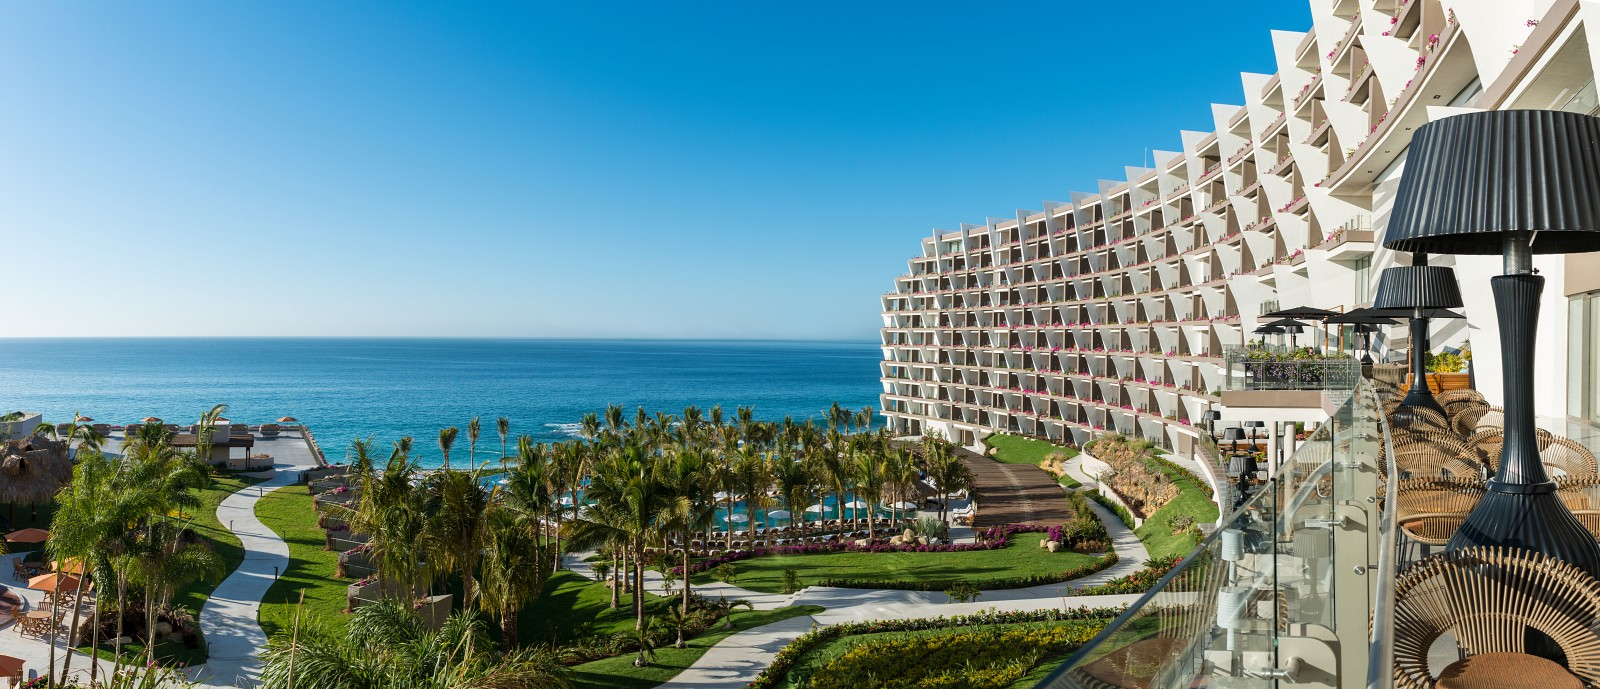 Grand-Velas-Los-Cabos-0412267Axlarge.1494950145